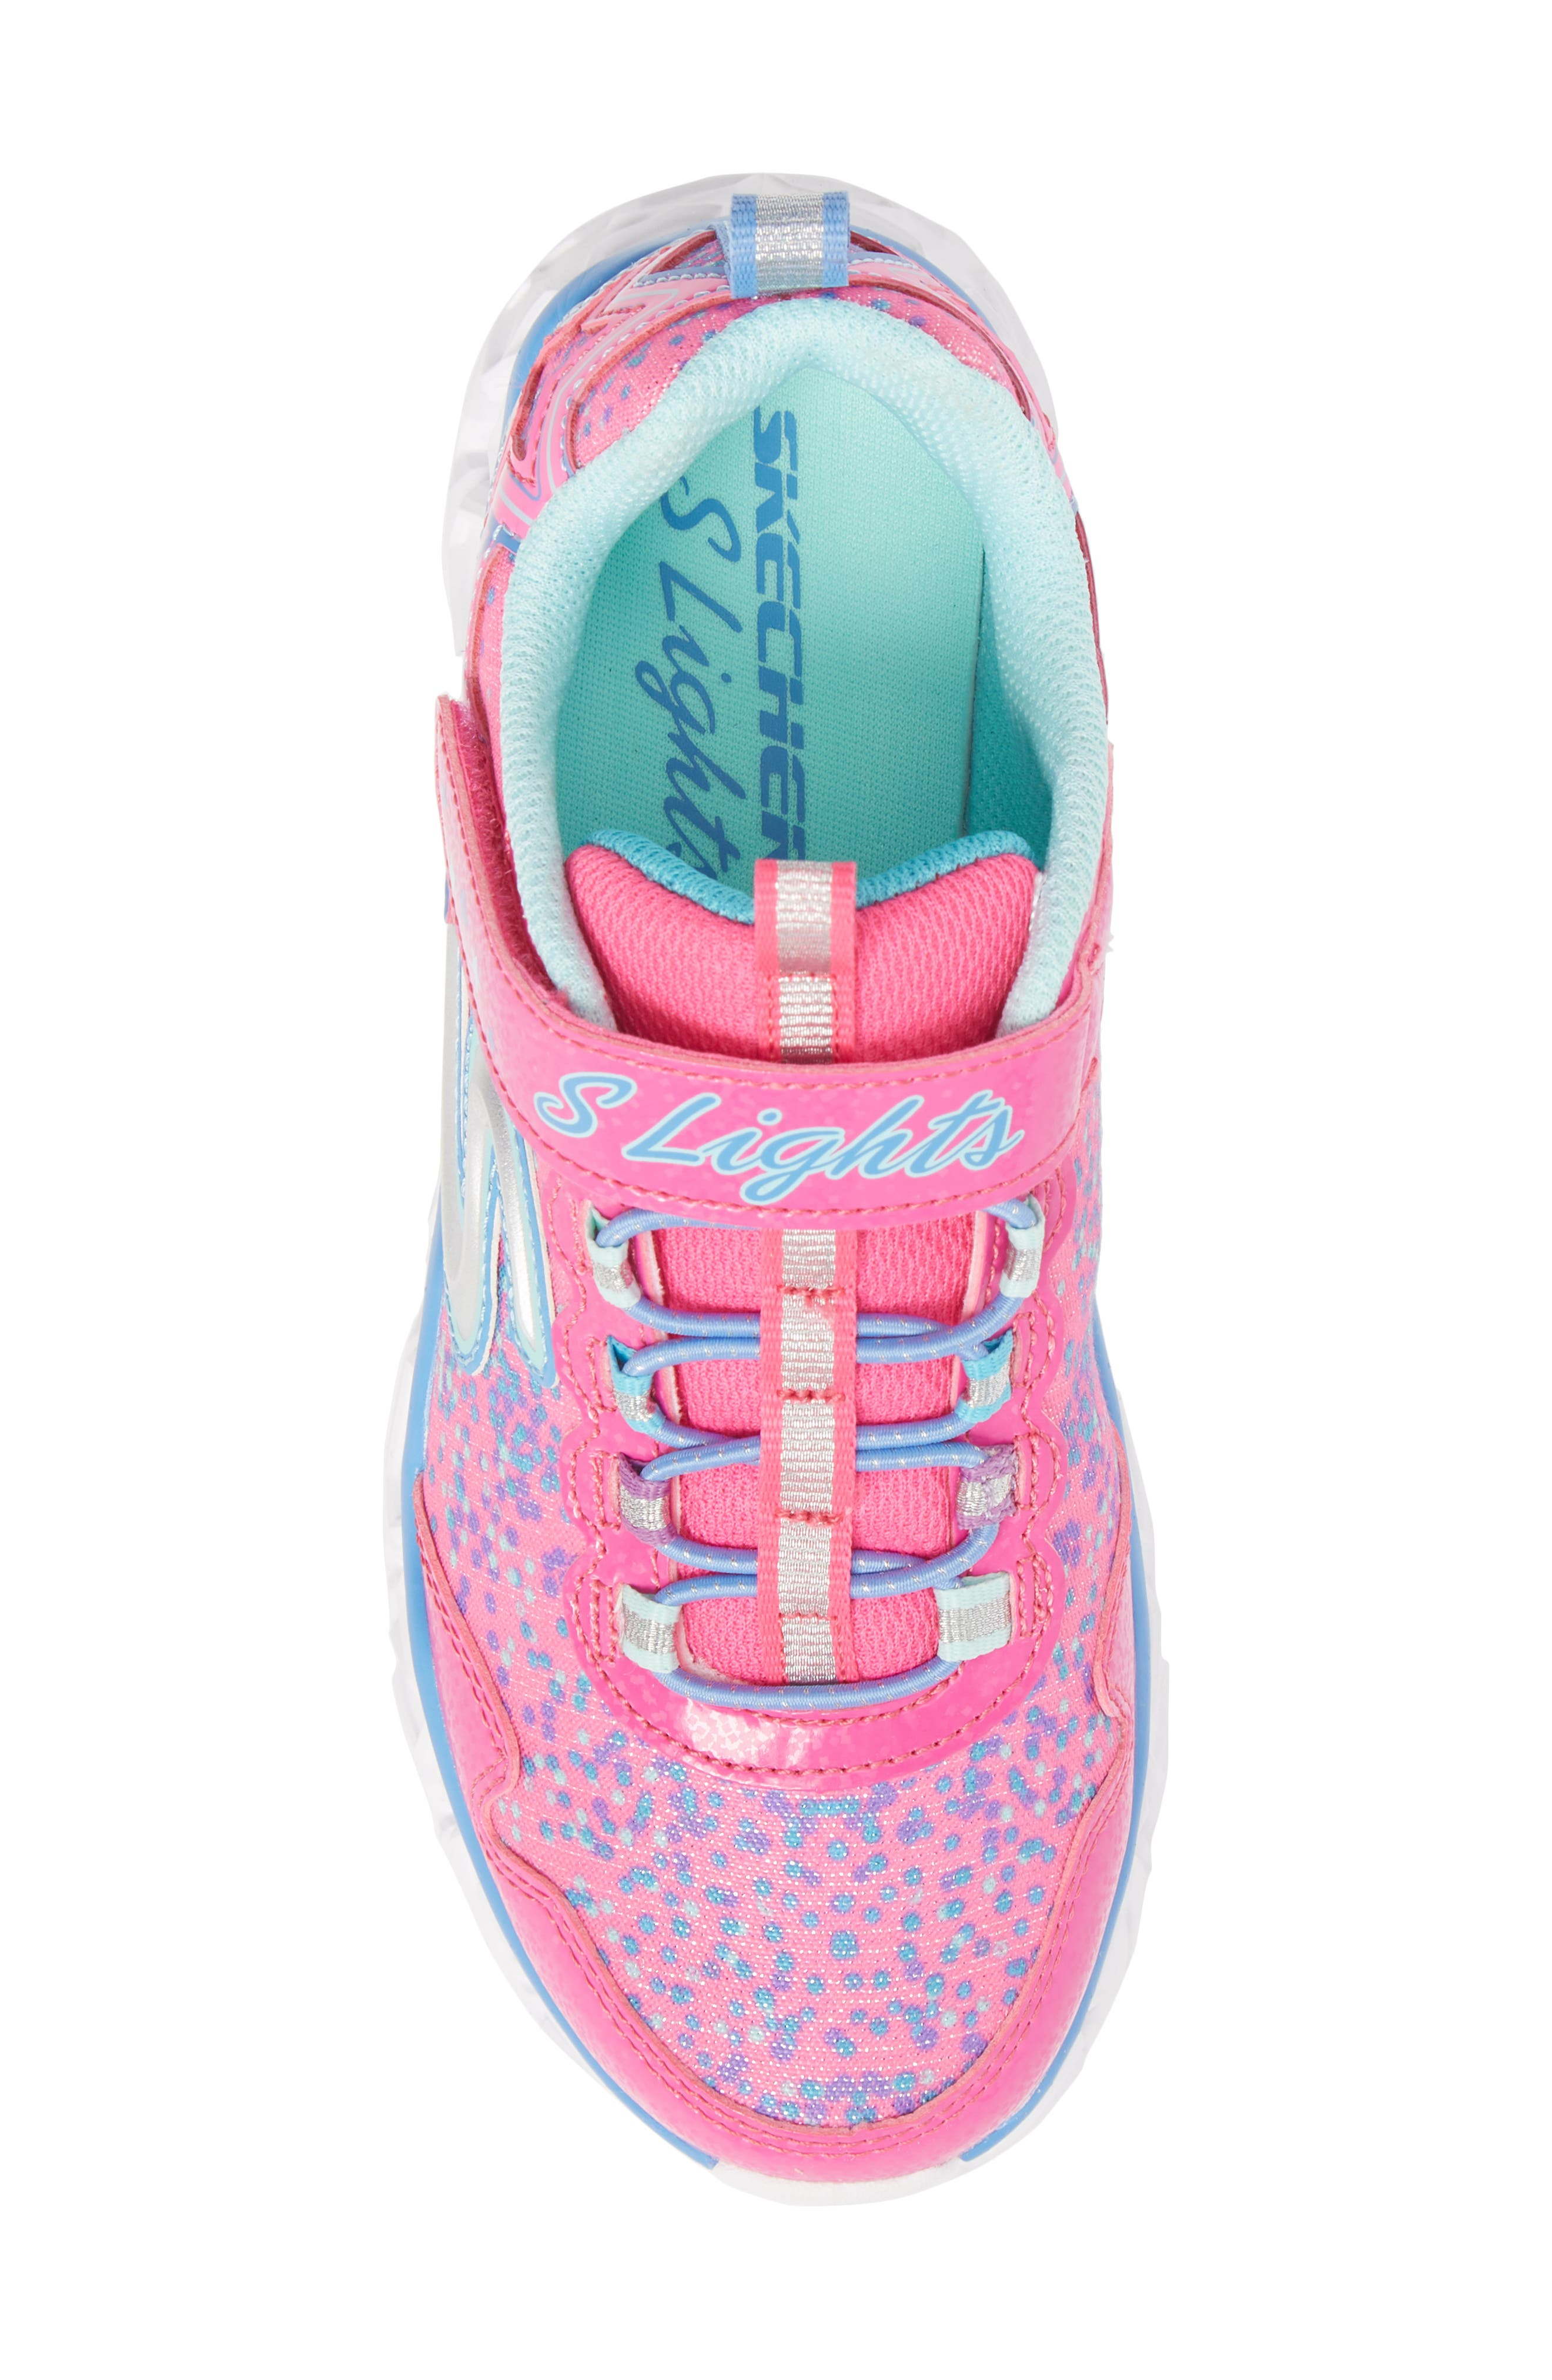 Galaxy Lights Sneakers,                             Alternate thumbnail 5, color,                             Neon Pink/ Multi